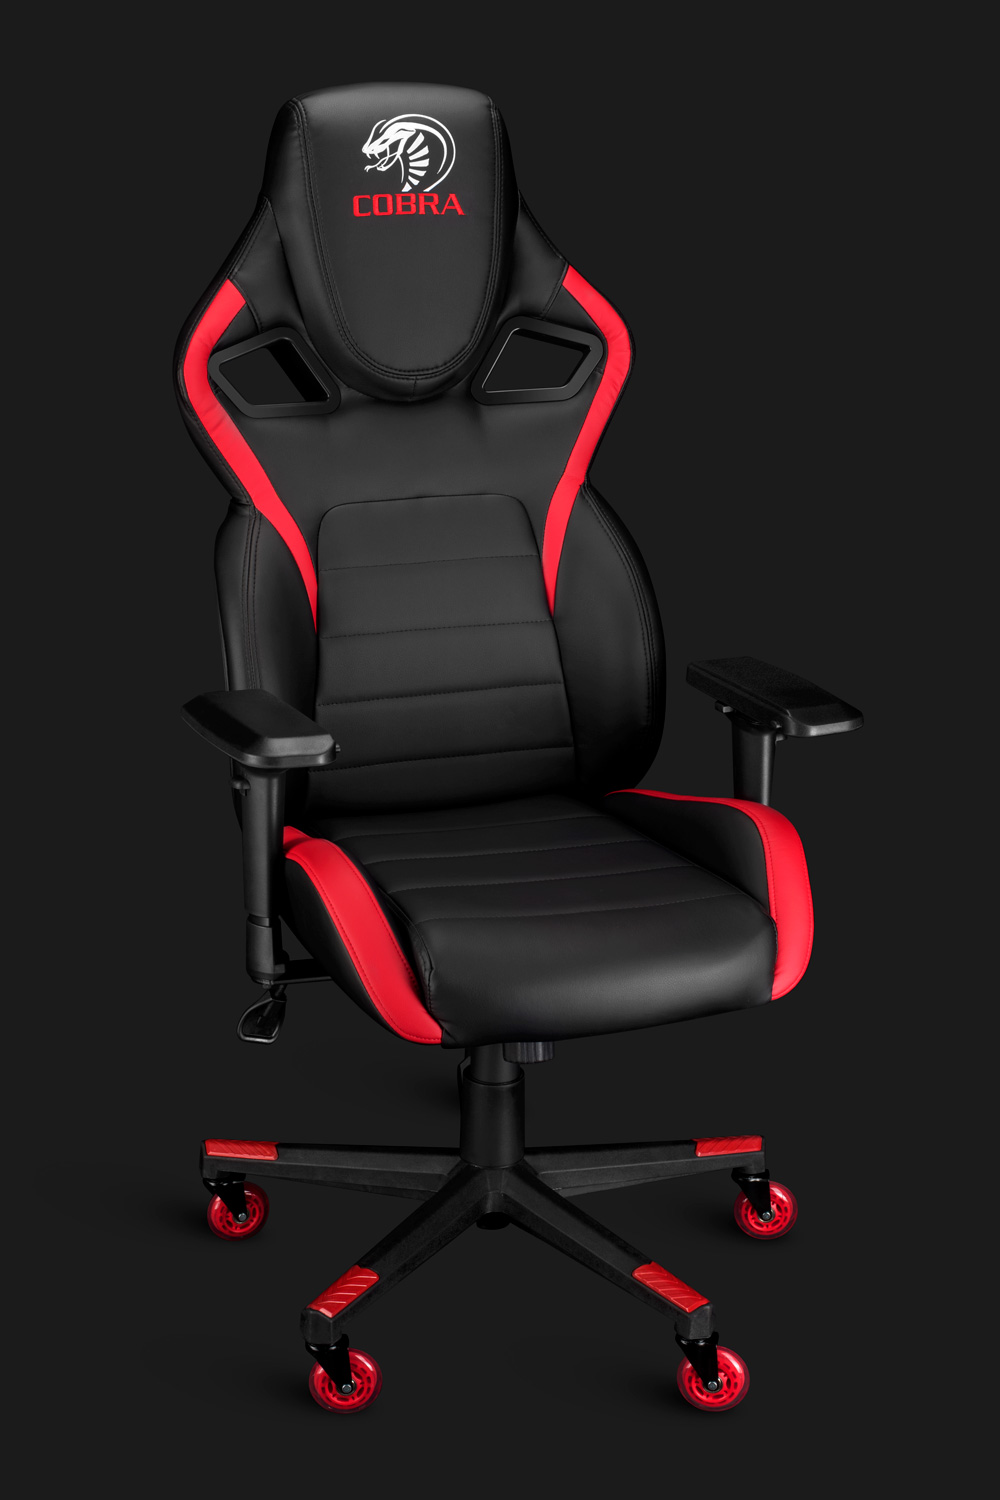 Cobra RM-1 Full Metal Structure Gaming Chair for eSports and Core Gamers